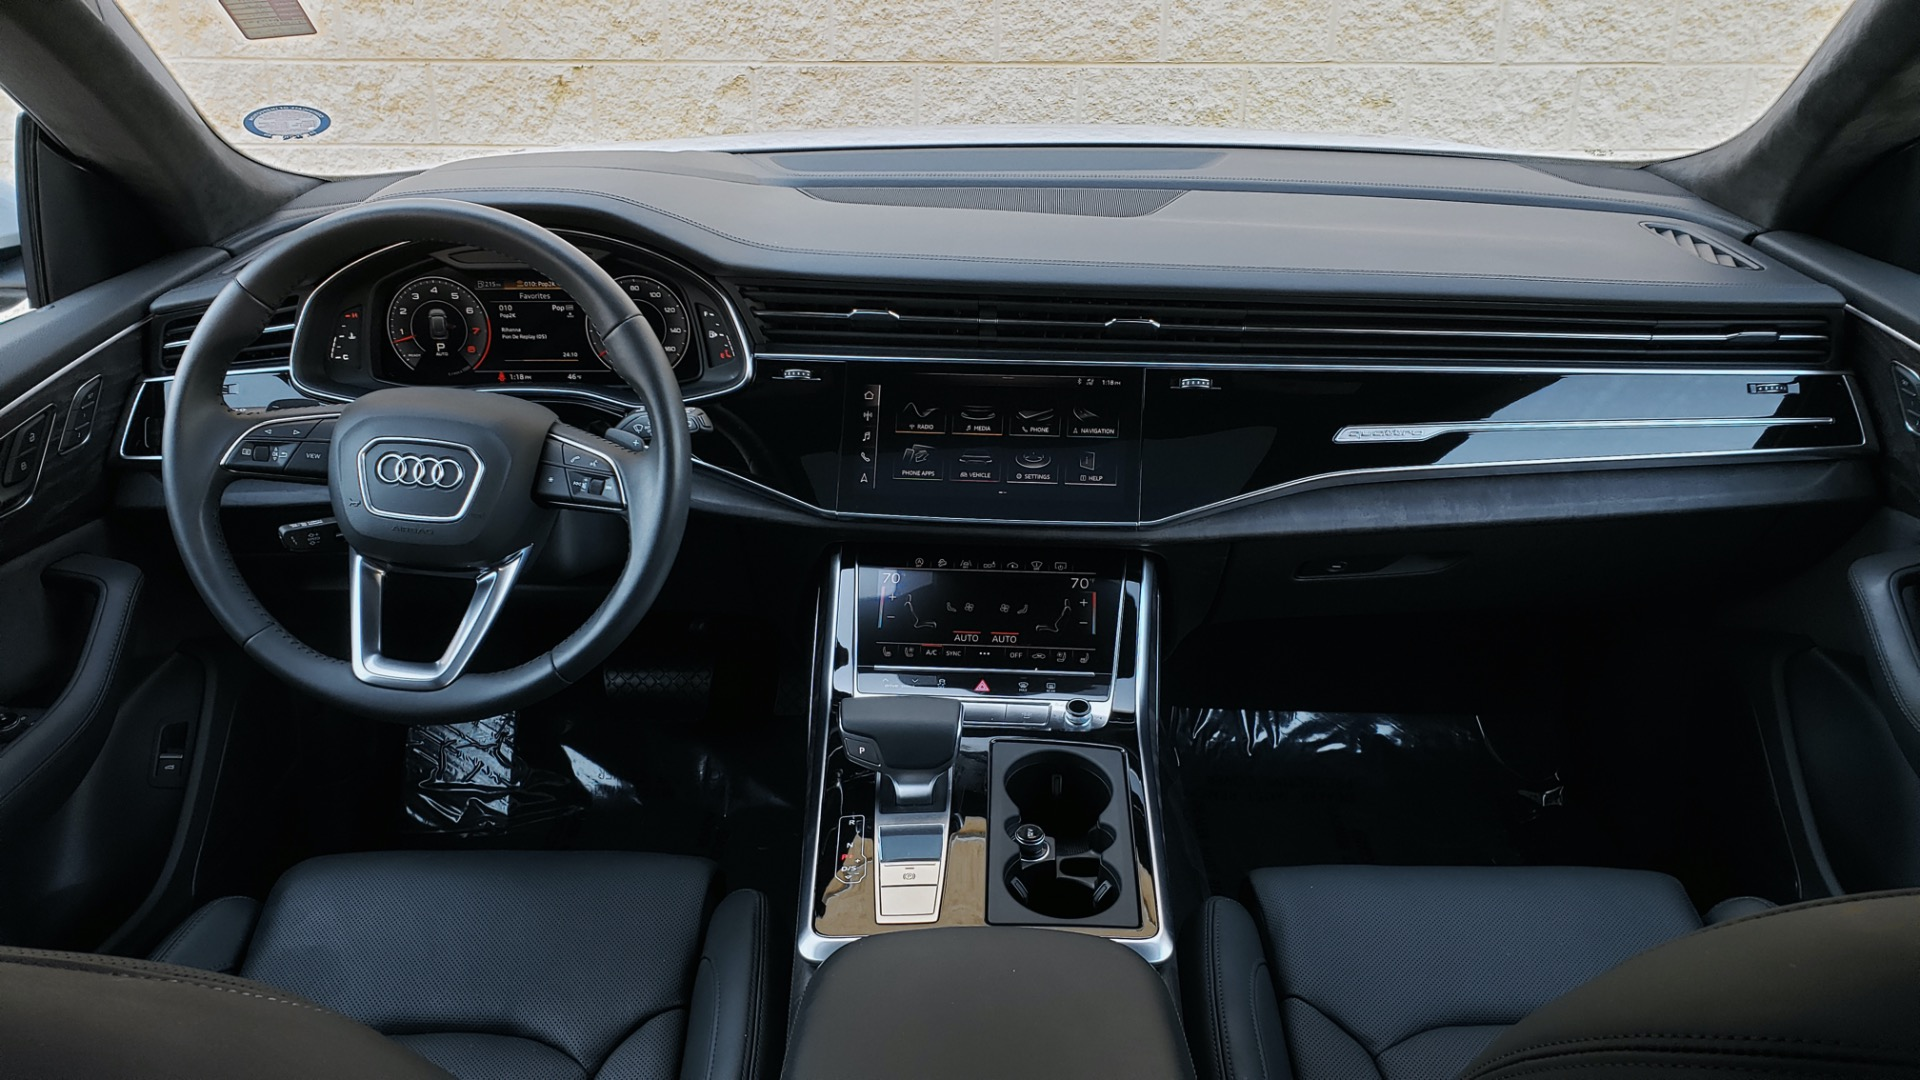 Used 2019 Audi Q8 PRESTIGE S-LINE / LUX PKG / ADAPT CHASSIS / YEAR ONE / CLD WTHR for sale Sold at Formula Imports in Charlotte NC 28227 97